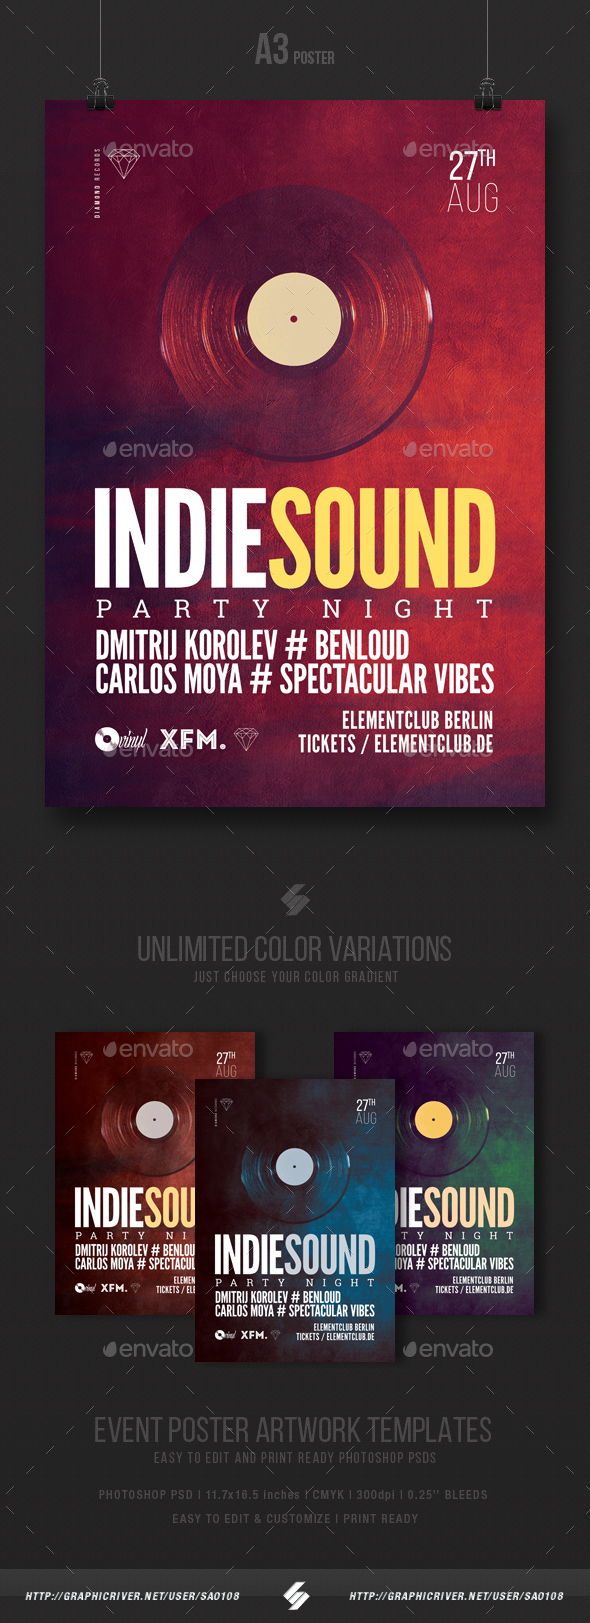 Indie Sound - Party Flyer / Poster Template A3 - Clubs & Parties Events